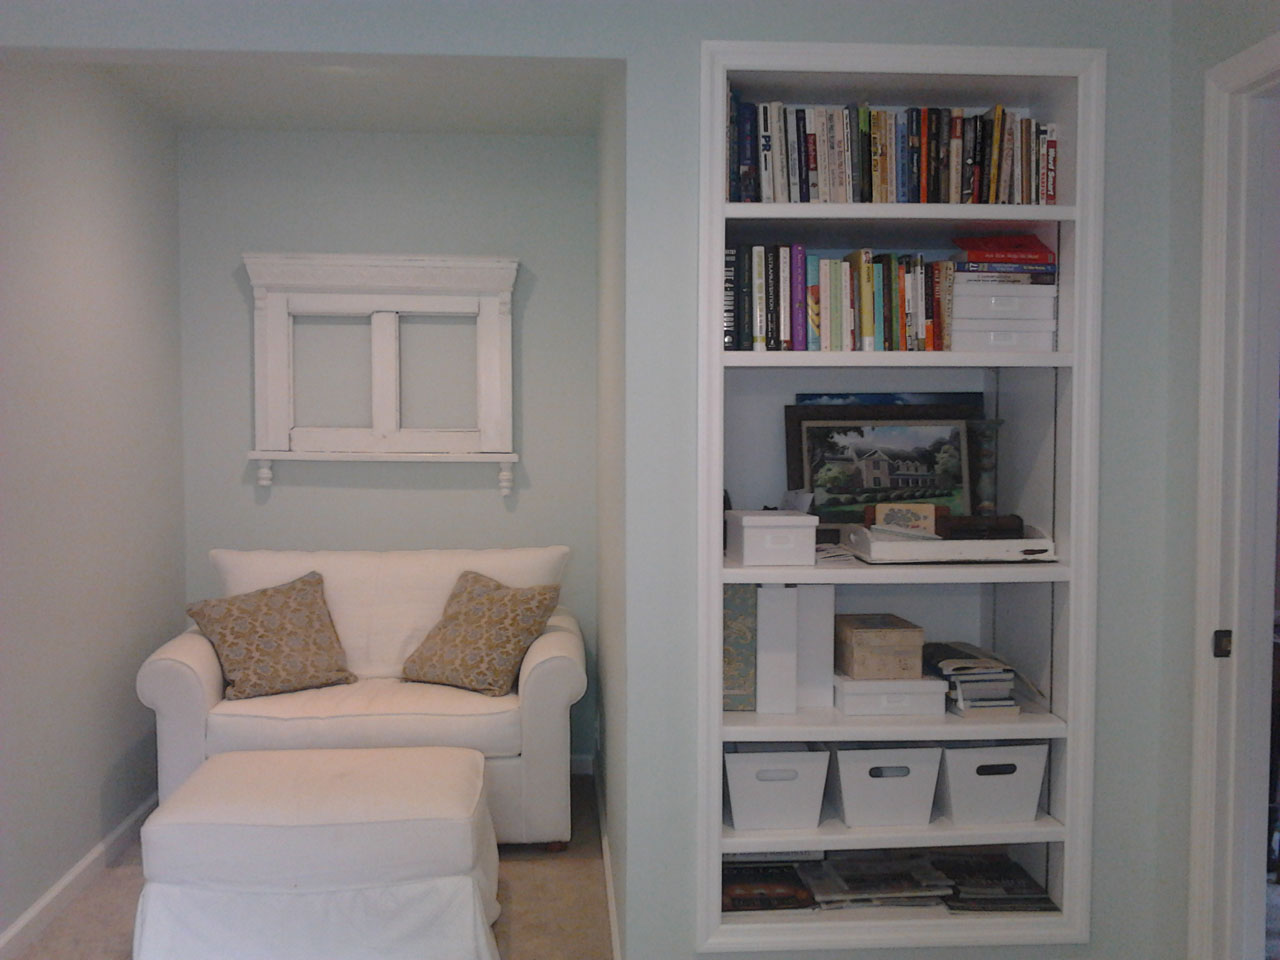 Home Office book shelving and seating